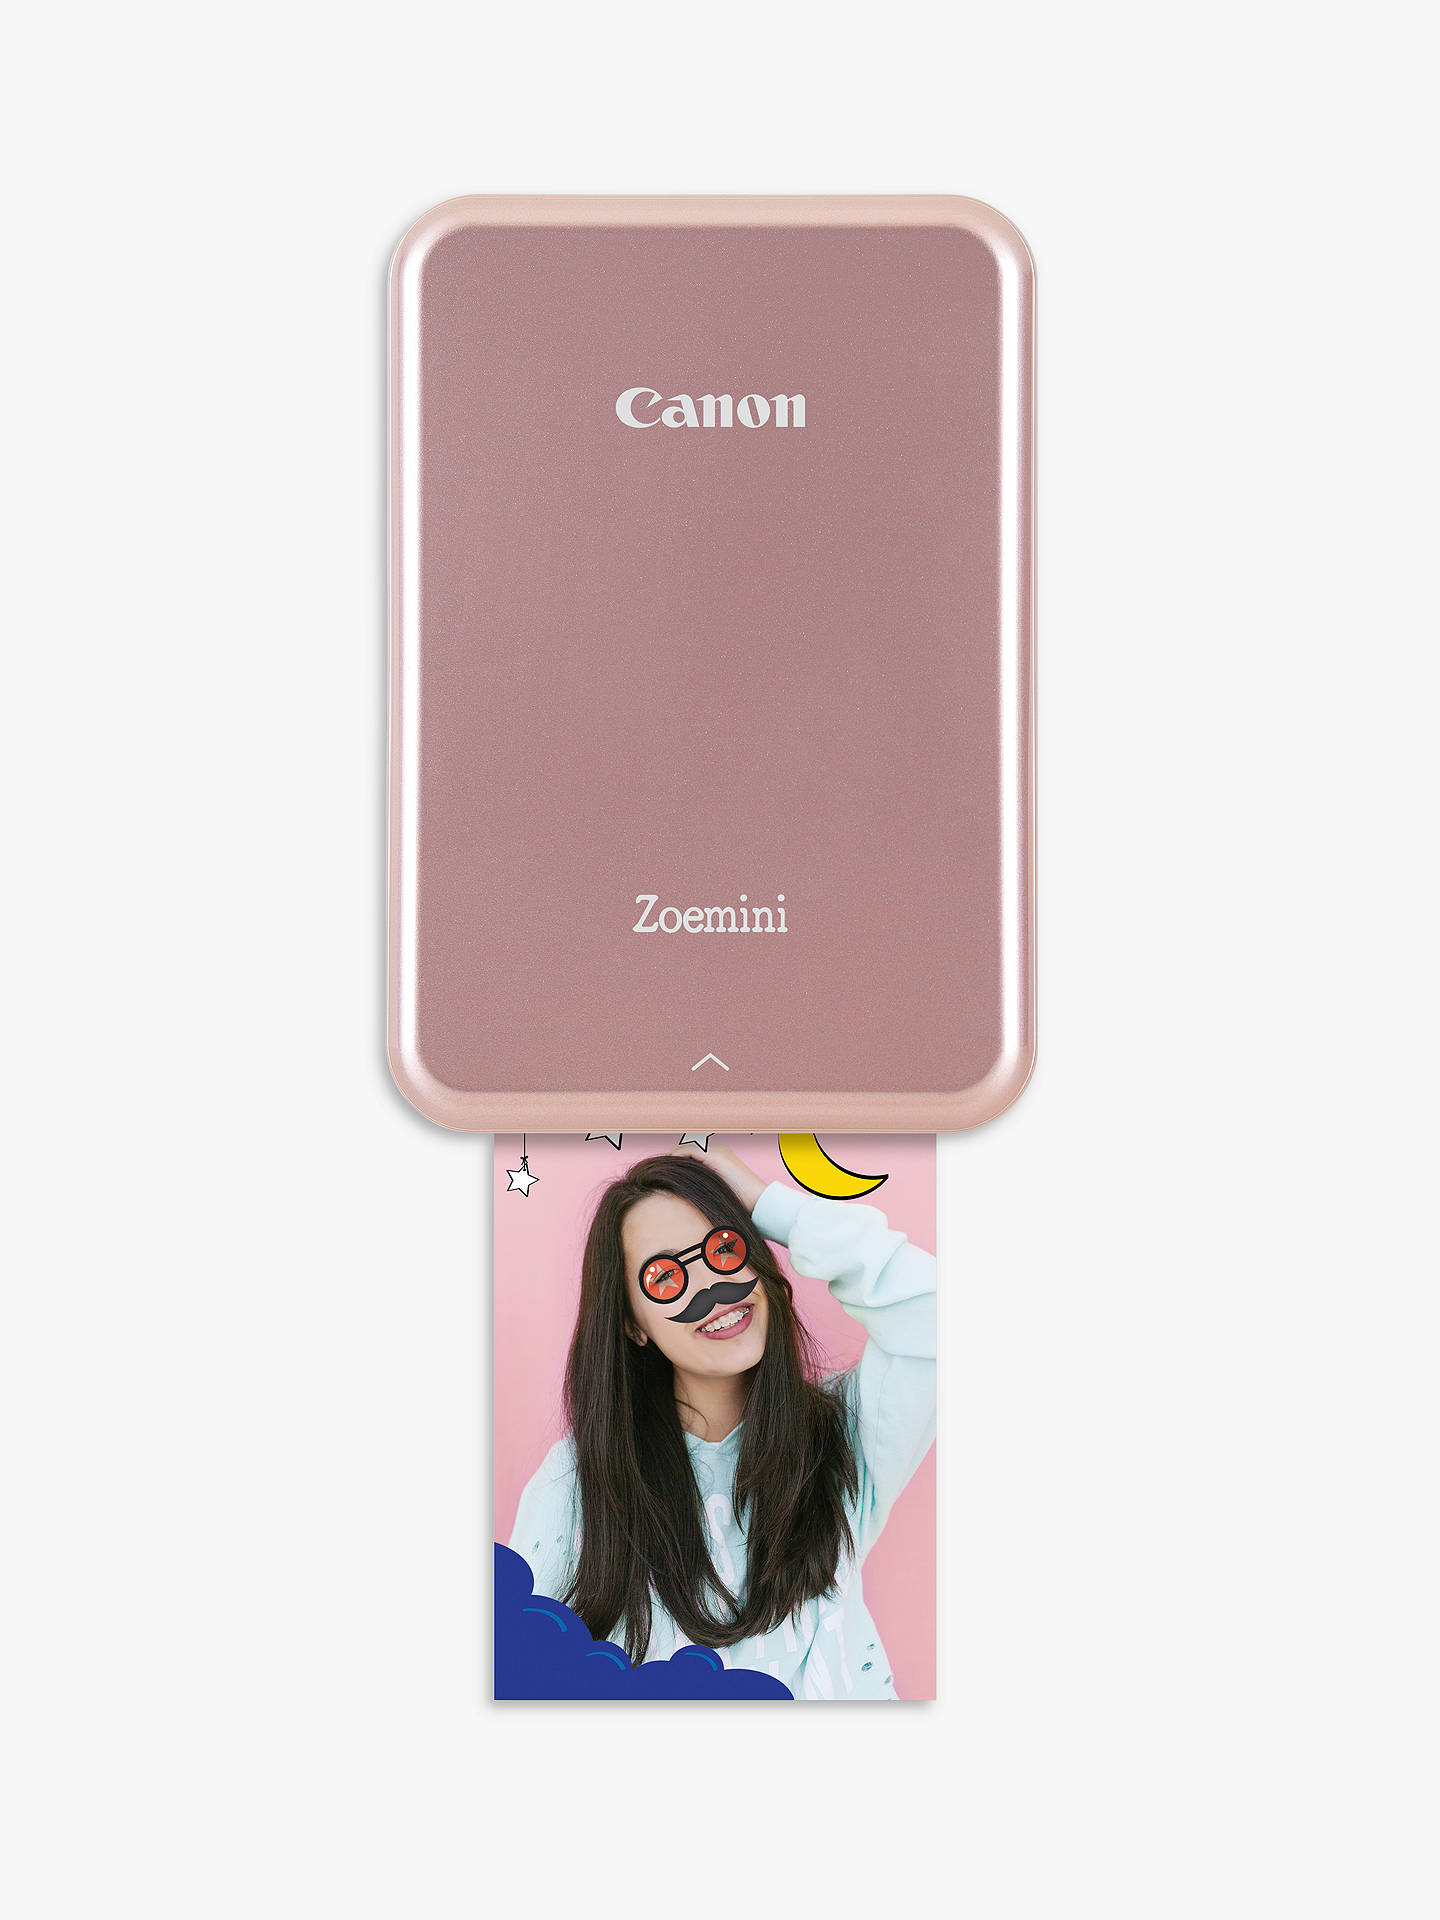 BuyCanon Zoemini Mobile Photo Printer, Rose Gold Online at johnlewis.com